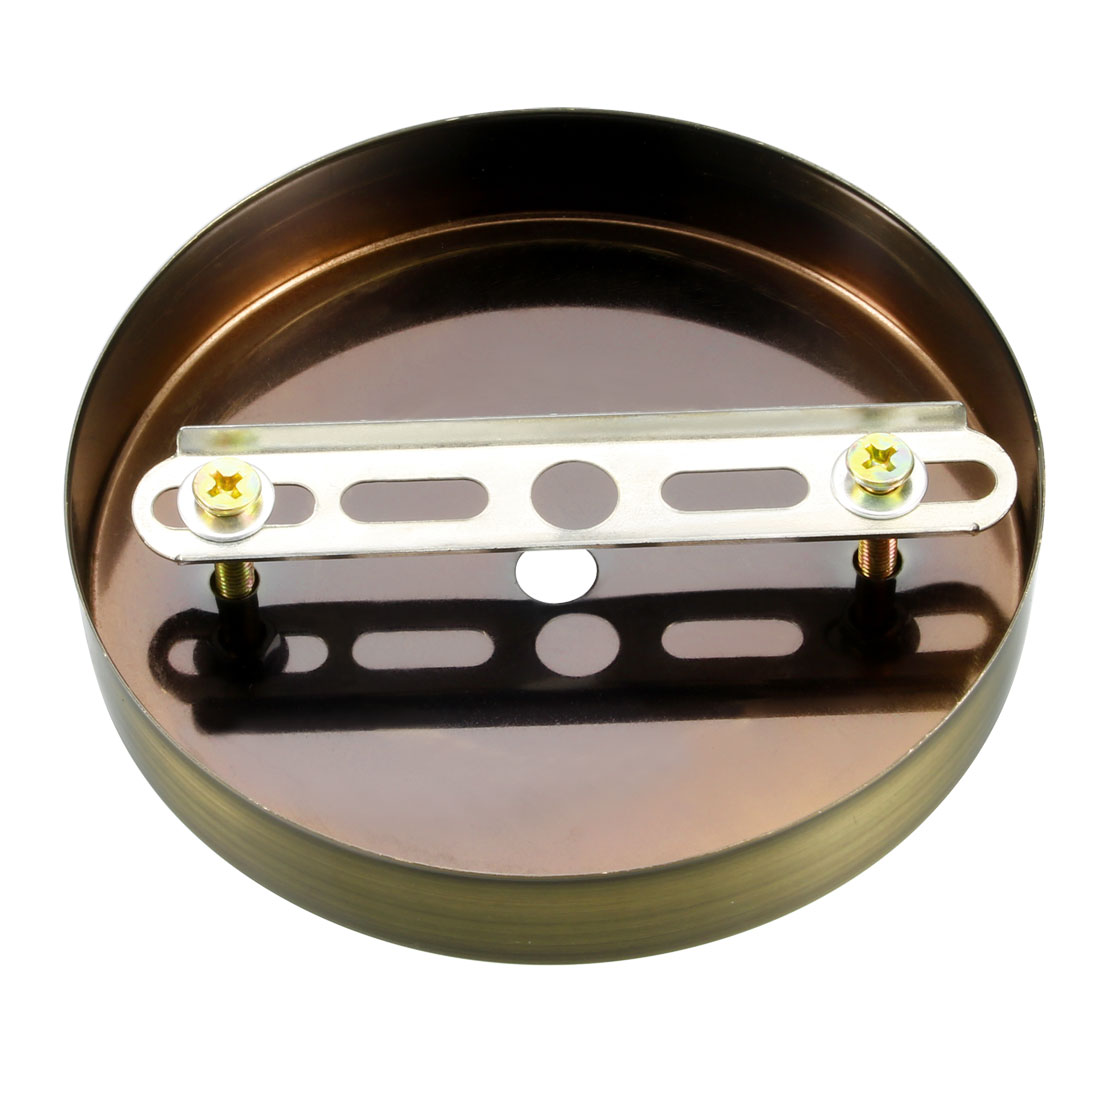 Ceiling Light Plate Base Chassis Disc Pendant Accessories Bronze w Screw 3pcs - image 2 of 4